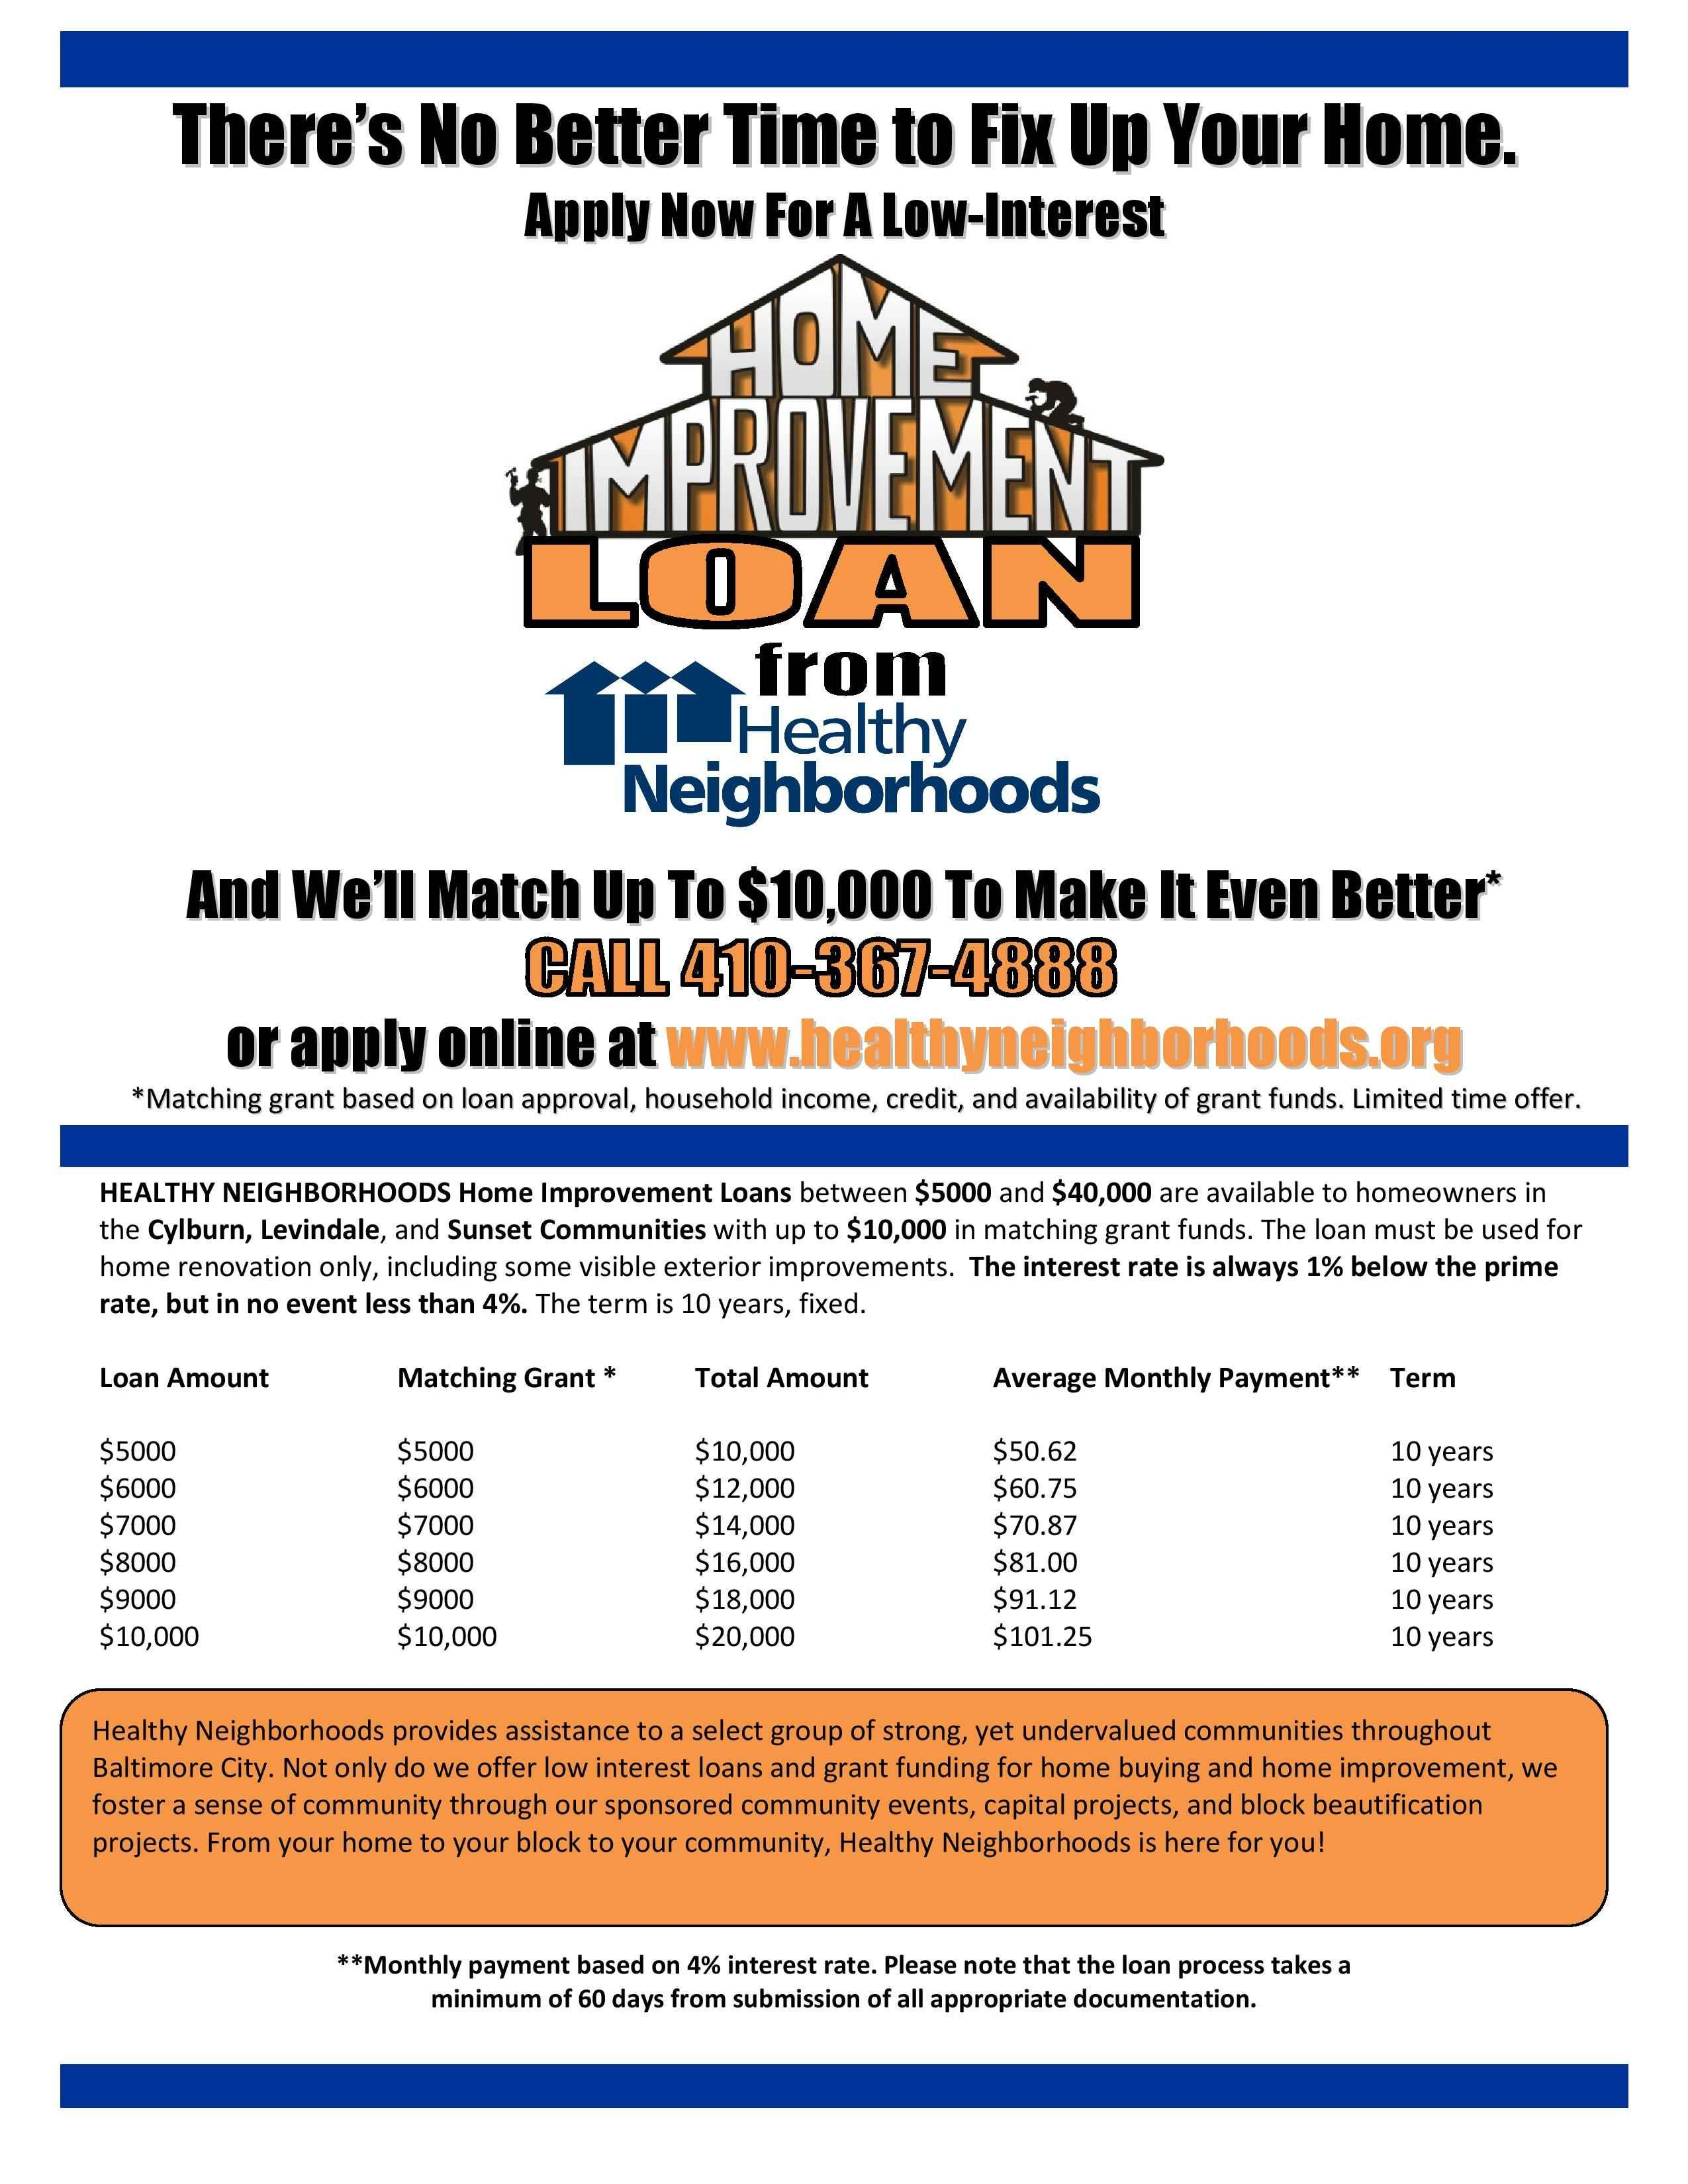 Home Improvement Flyers Info On Financing House Improvements